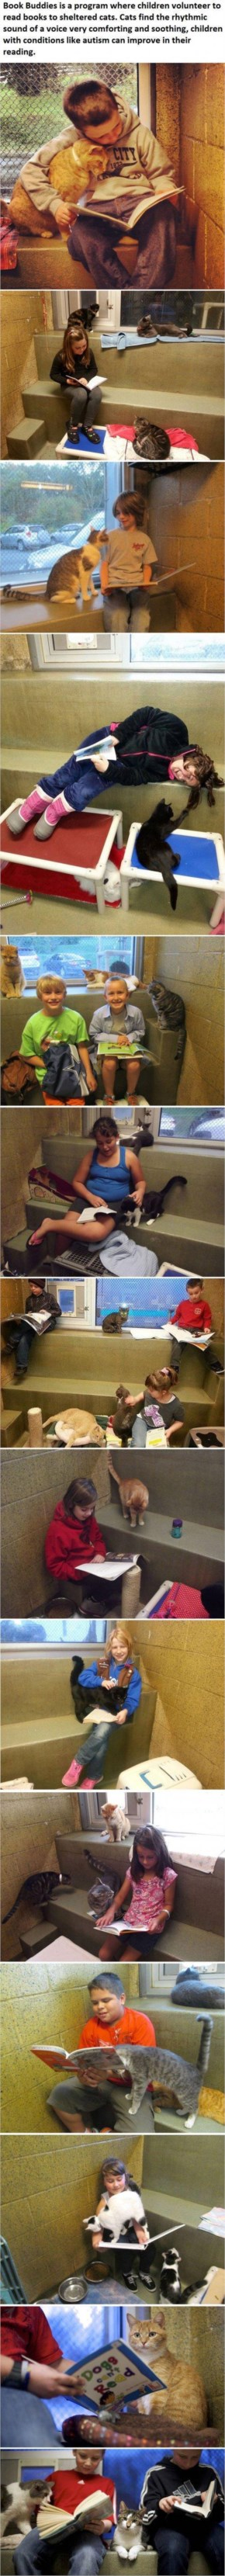 Children read to shelter cats